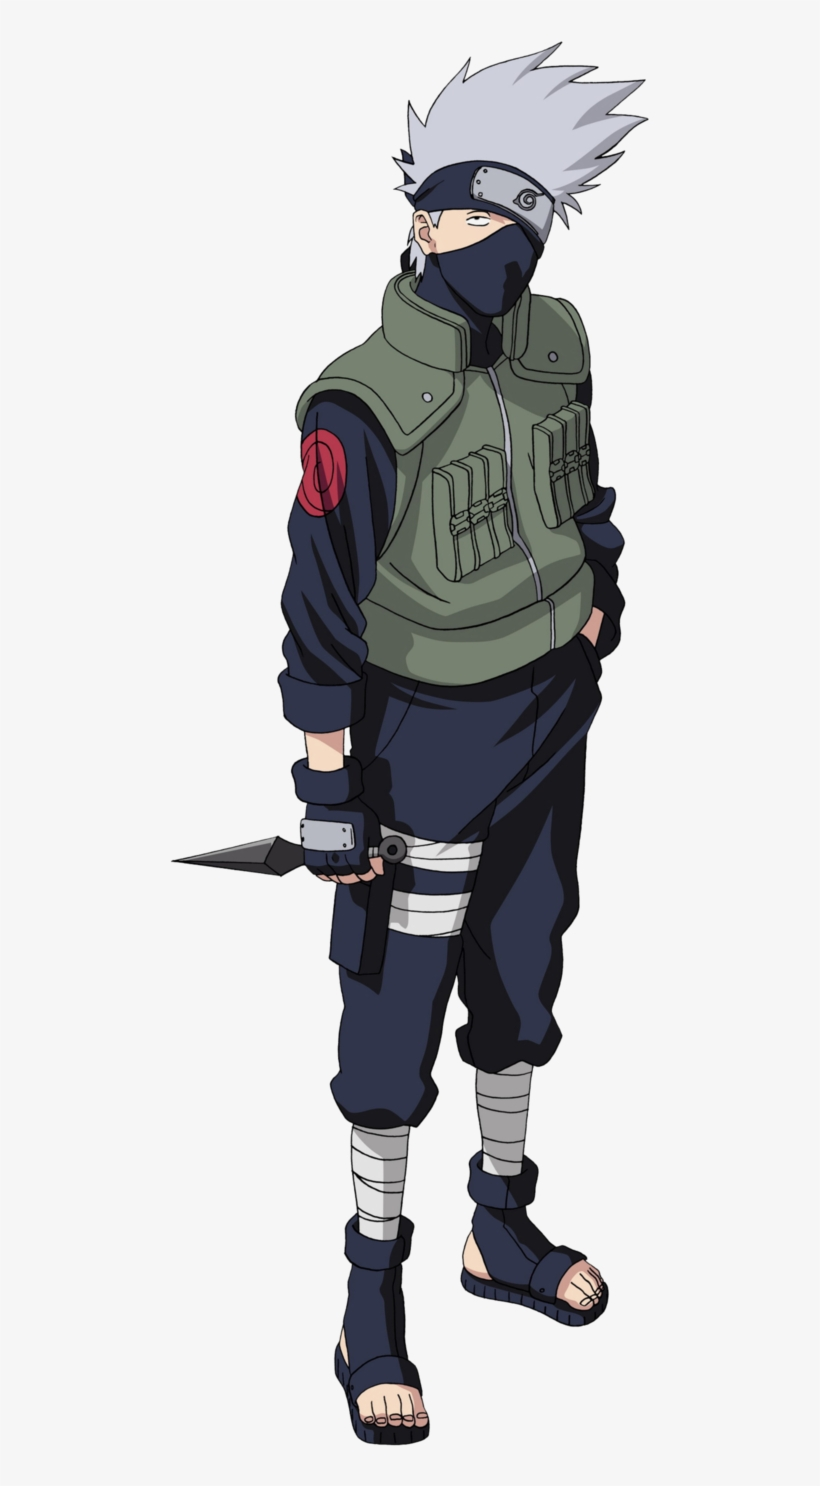 Kakashi Anbu Full Body : kakashi, Kakashi, Hatake, Possessed, Sharingan, Naruto, Characters, Transparent, Download, PNGkey